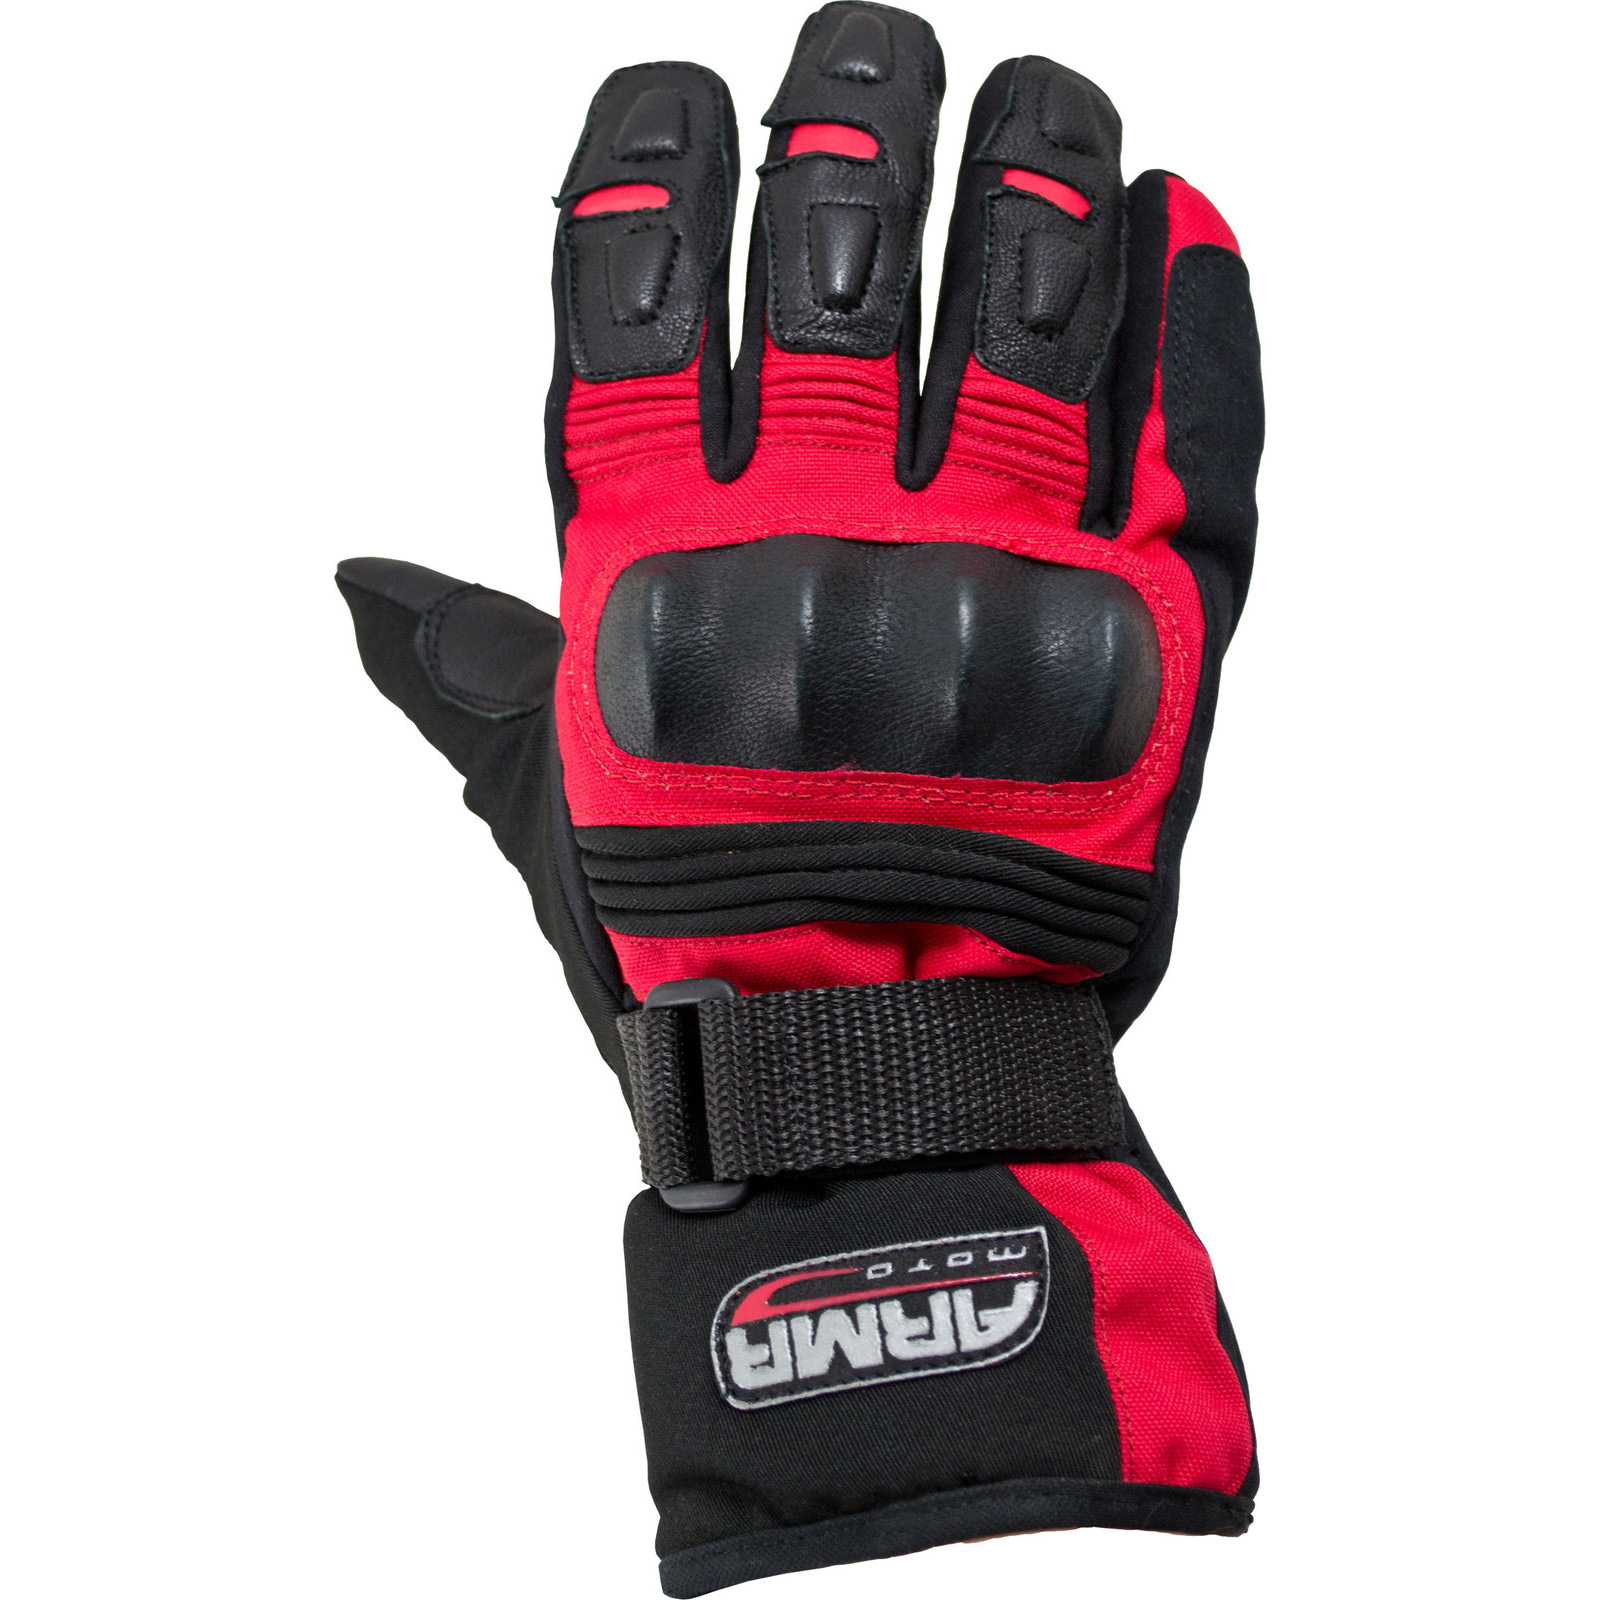 Motorcycle gloves thinsulate - Picture 8 Of 11